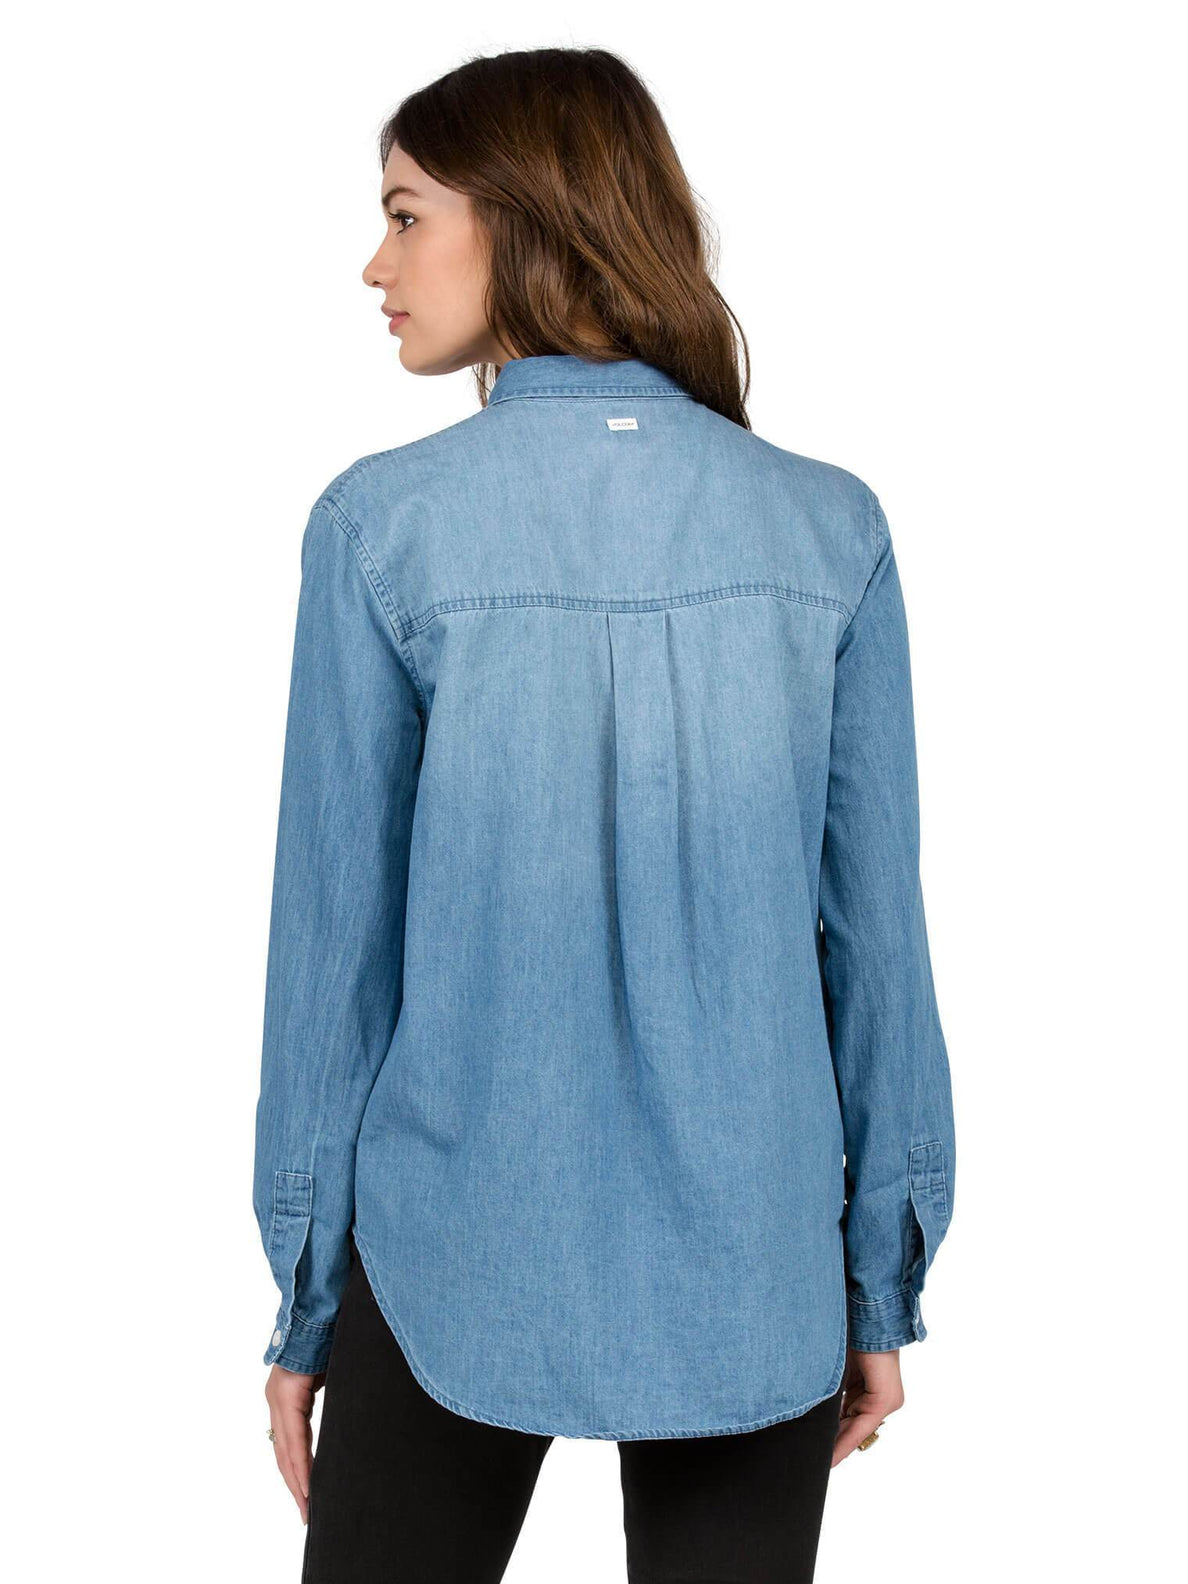 Cham Hey Long Sleeve Shirt - Cloud Blue